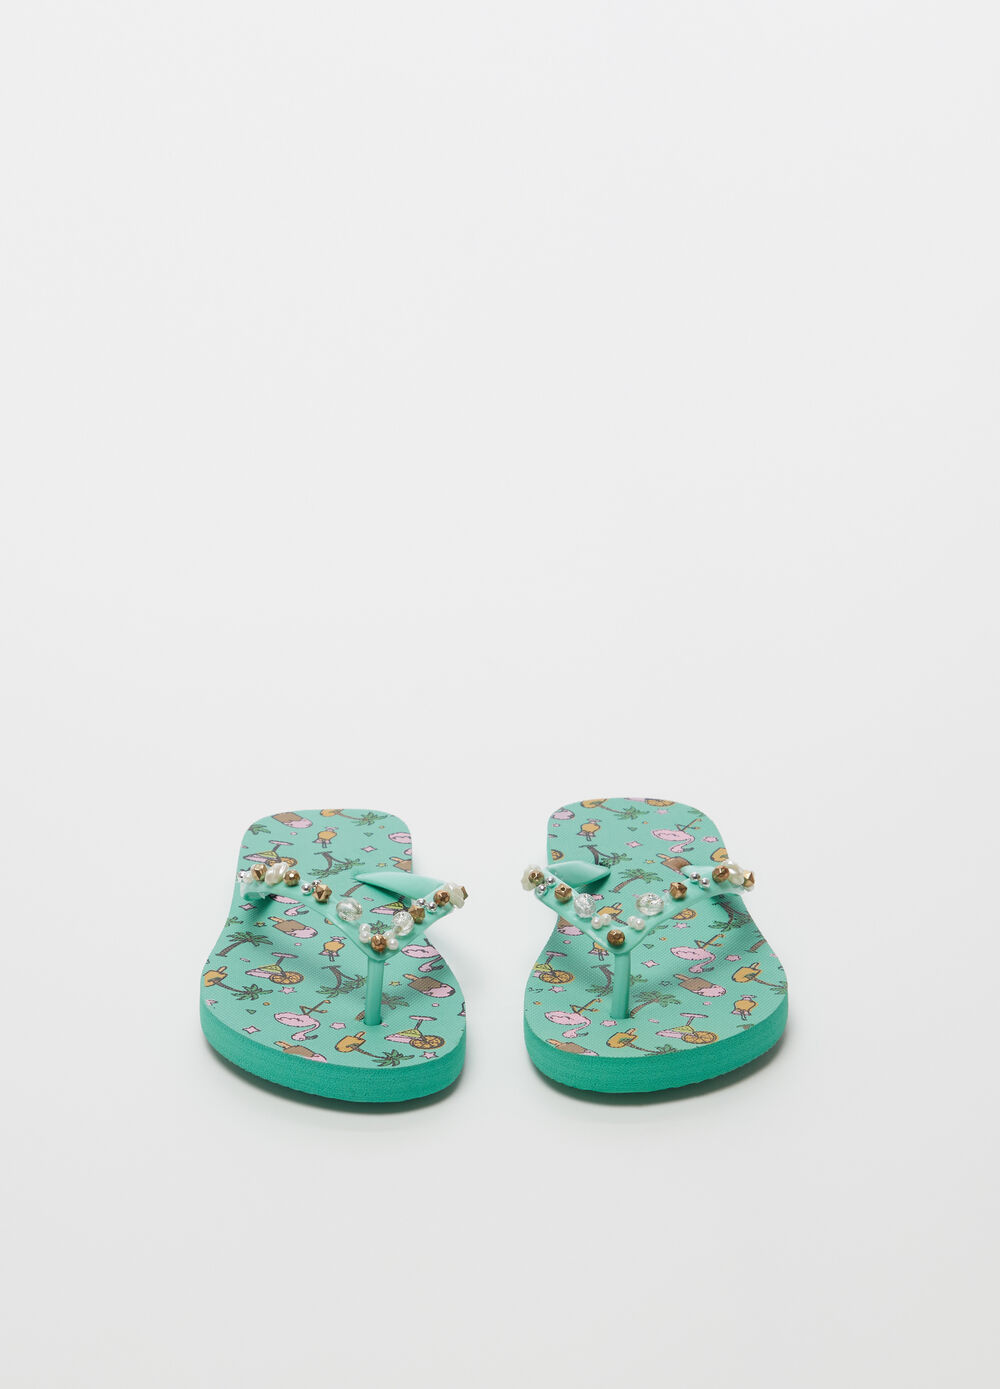 Thong sandals with beads and patterned sole